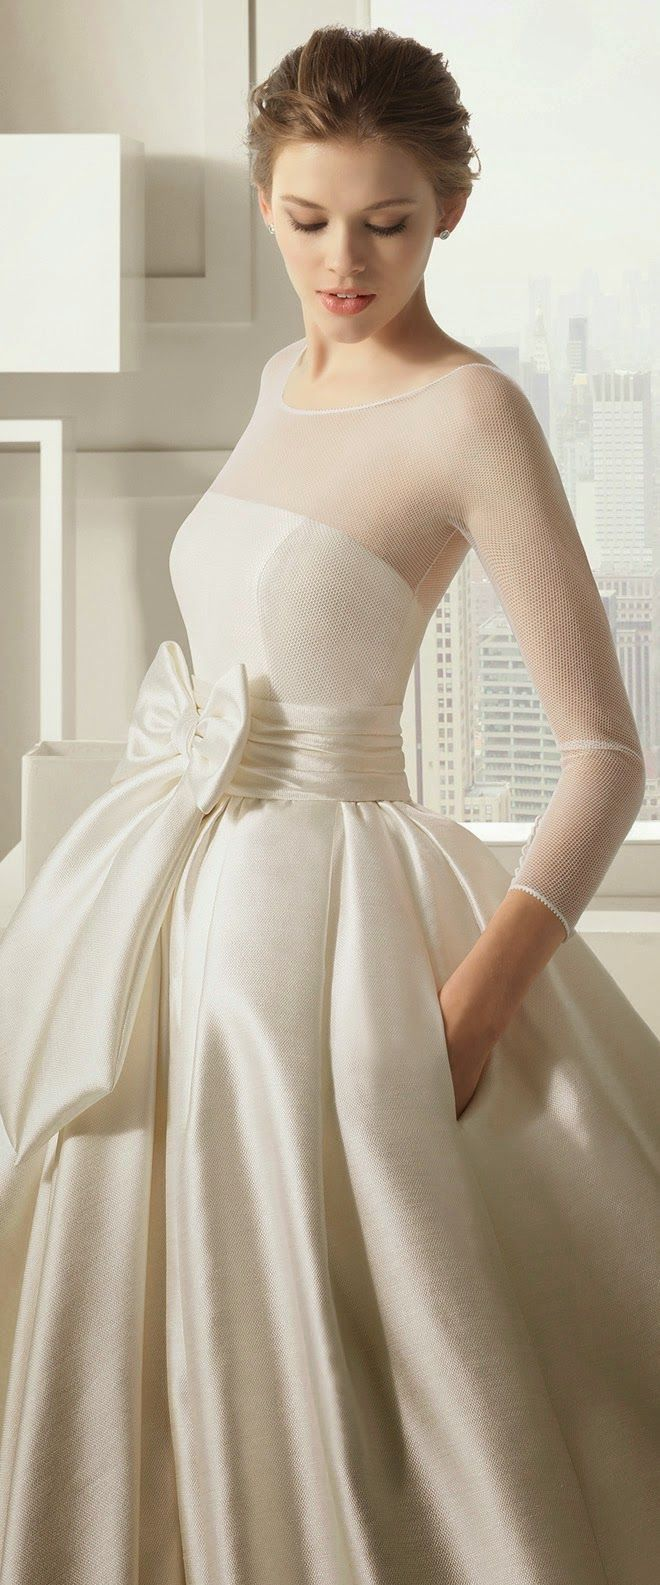 Winter wedding dresses bellethemagazine but put the bow in